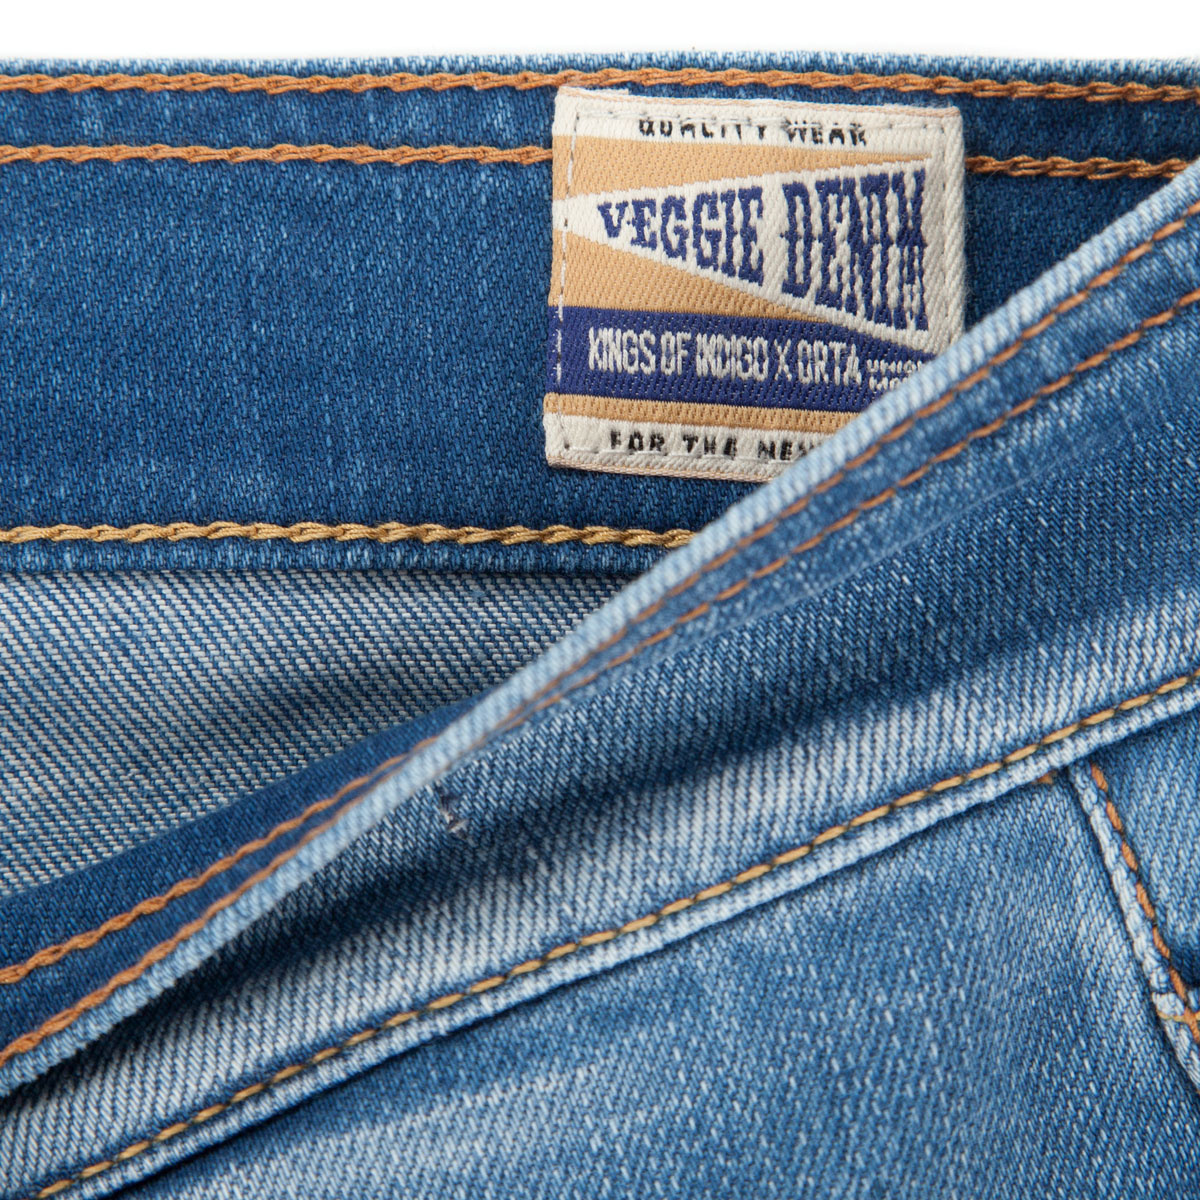 The Veggie capsule collection uses an organic denim fabric by Orta.